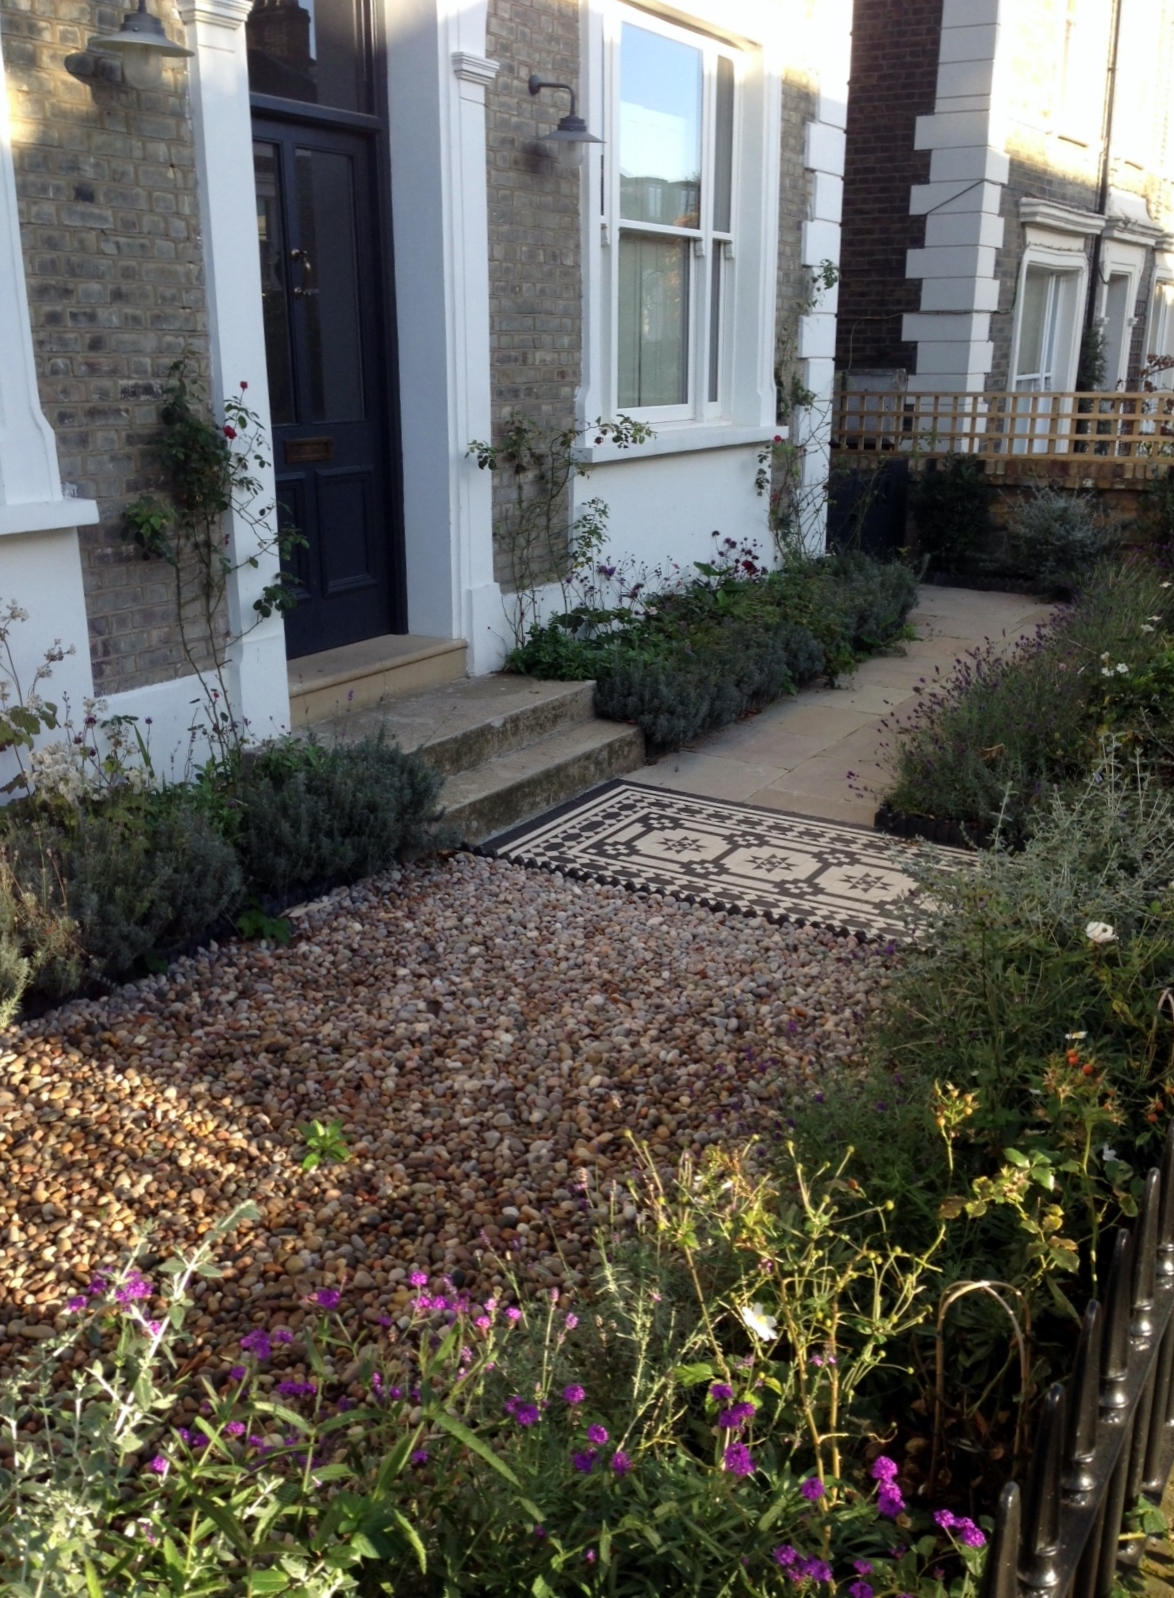 Islington Victorian mosaic tile path York stone sandstone paving wrought iron rails and gate London (12)